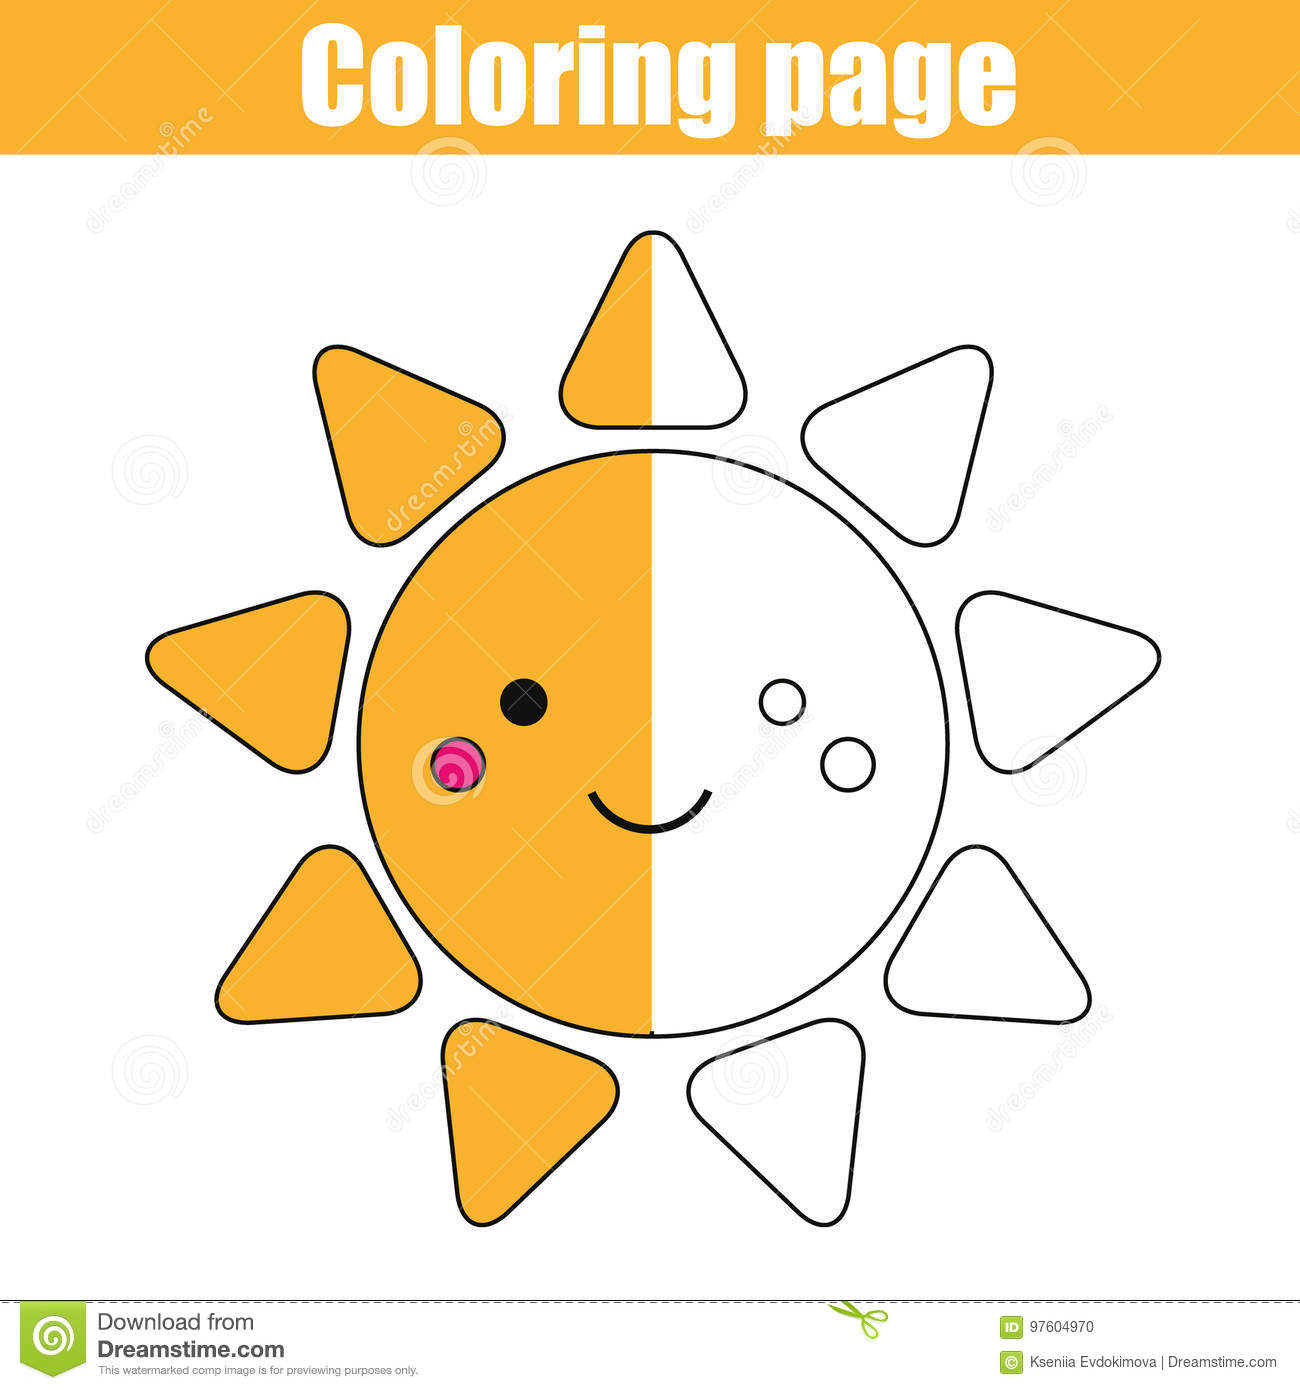 Coloring Page With Cute Sun Character Educational Game Printable Drawing Kids Activity Stock Vector Illustration Of Positive Preschool 97604970